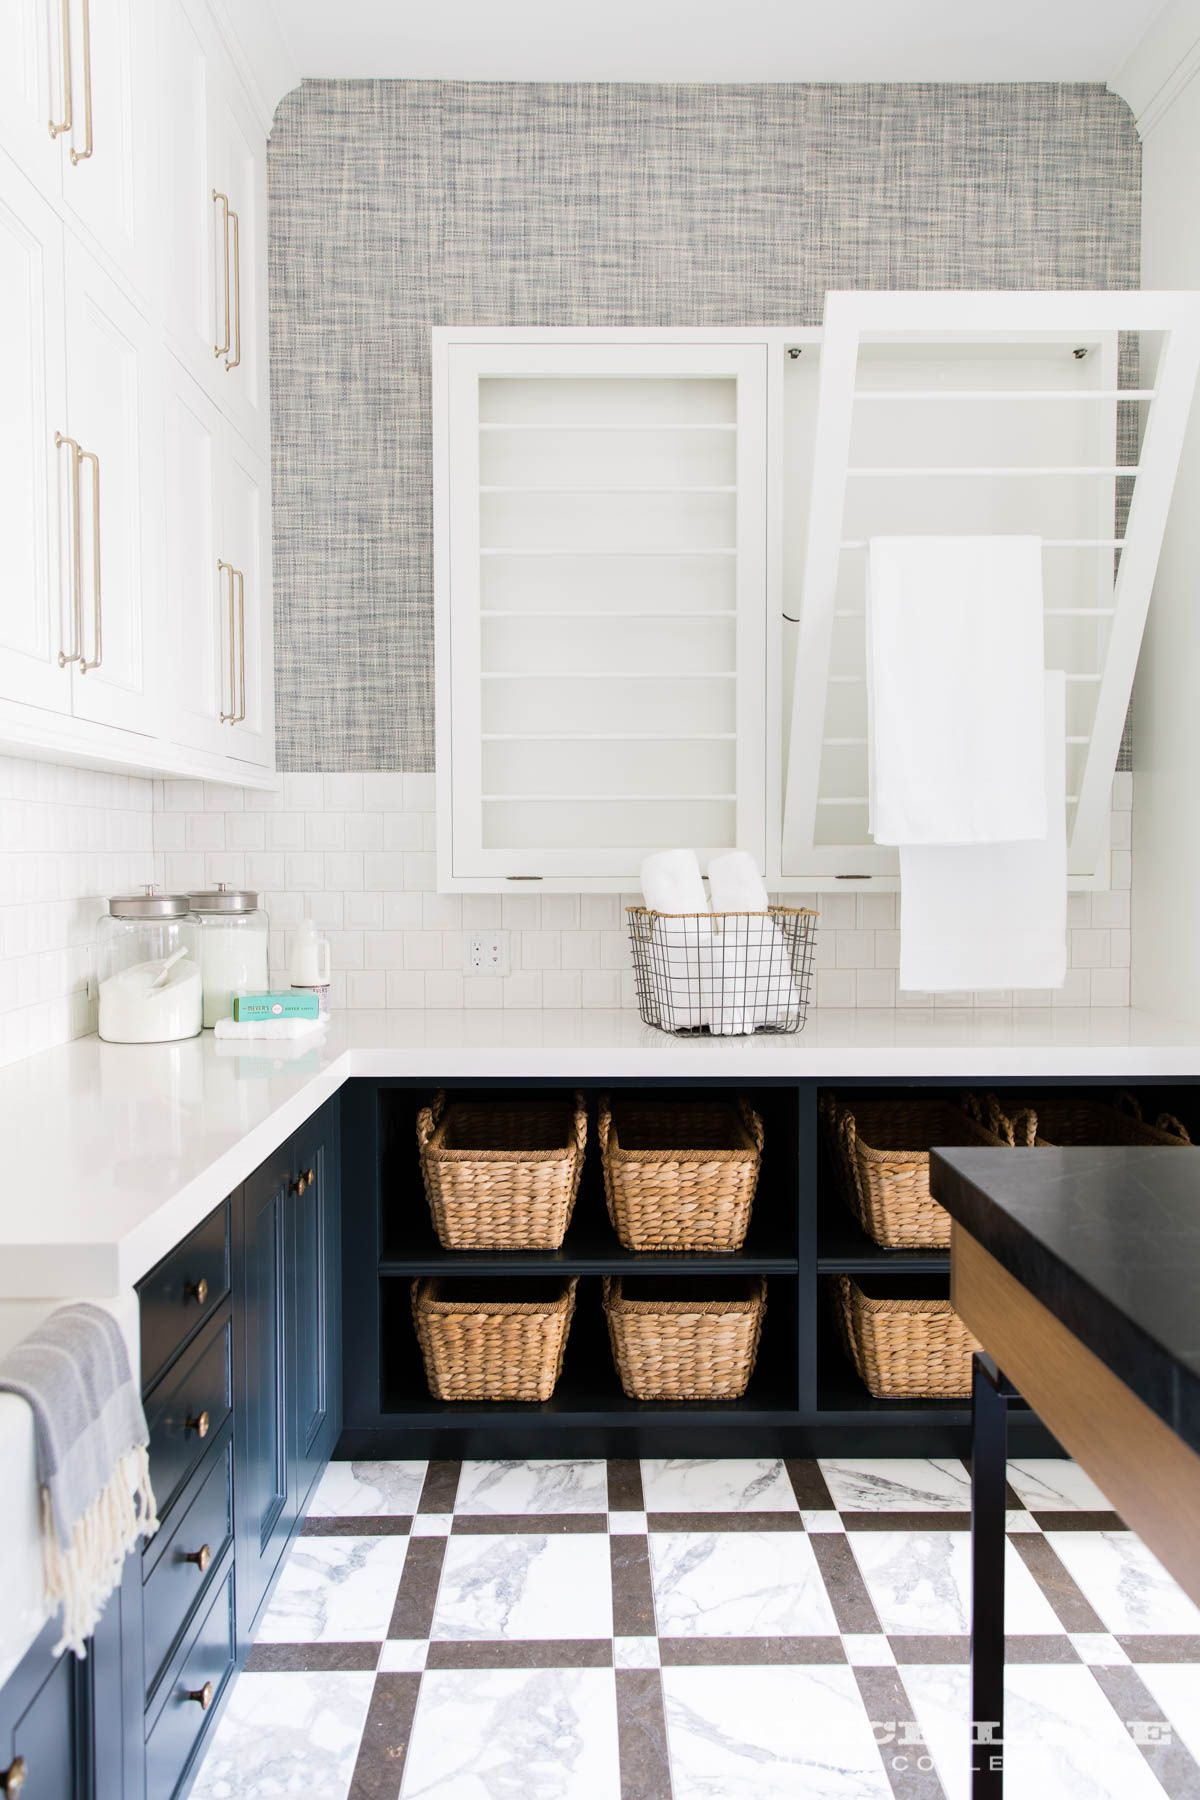 Large laundry room design with fold out drying rack  d14b4dc7d7